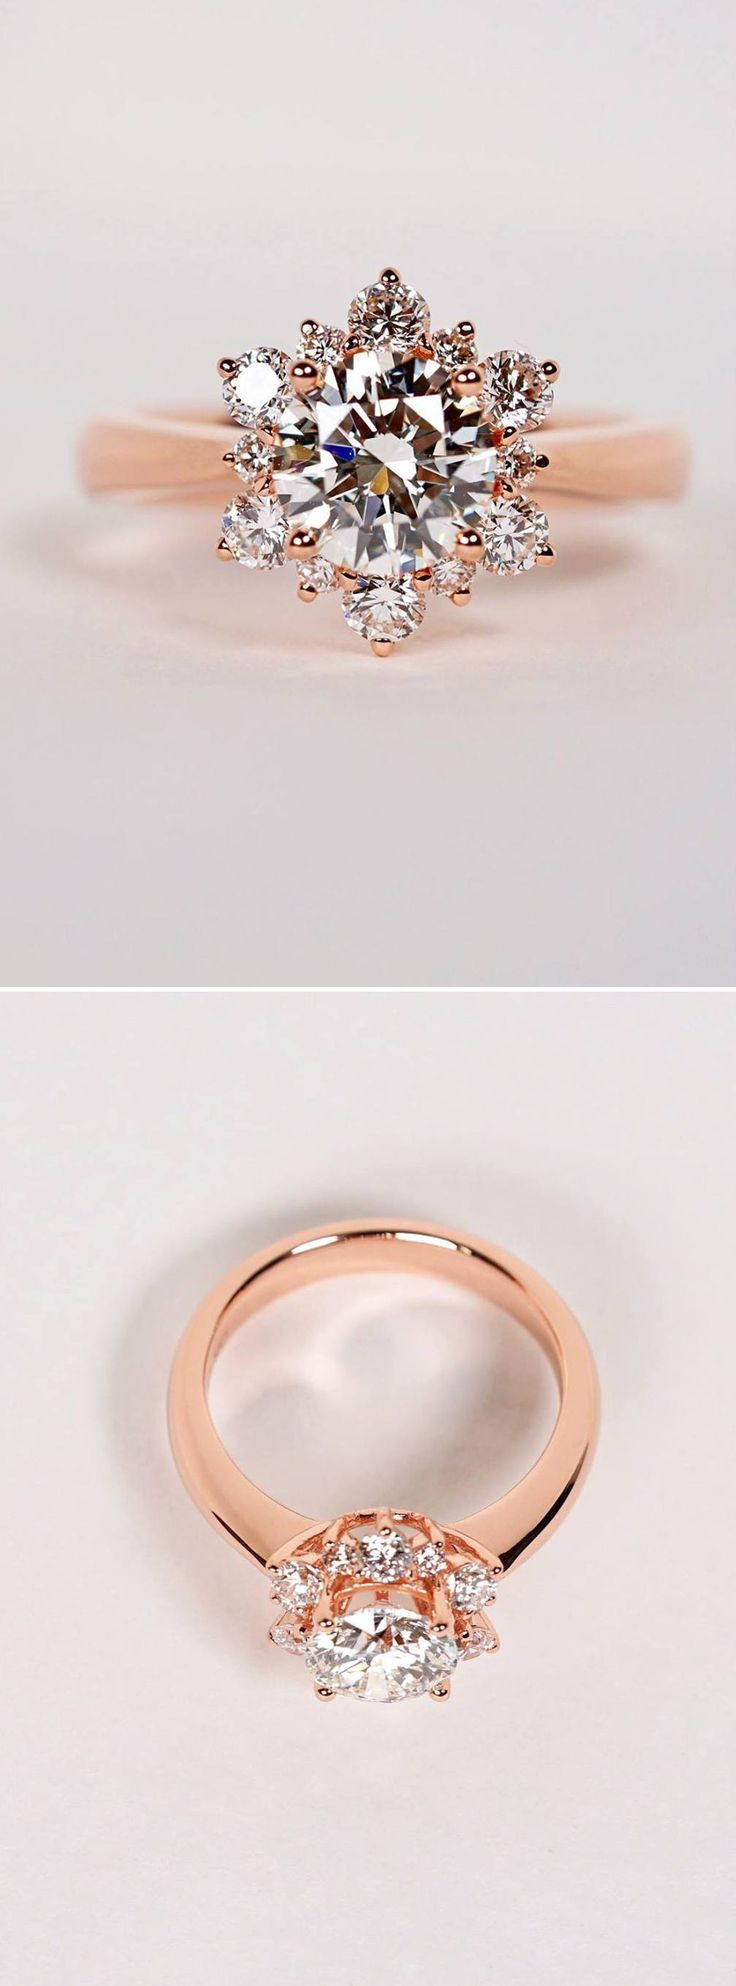 wedding rings rose gold rose gold wedding rings Beautiful rose gold engagement ring inspired by a snowflake Website www theweddingscoop